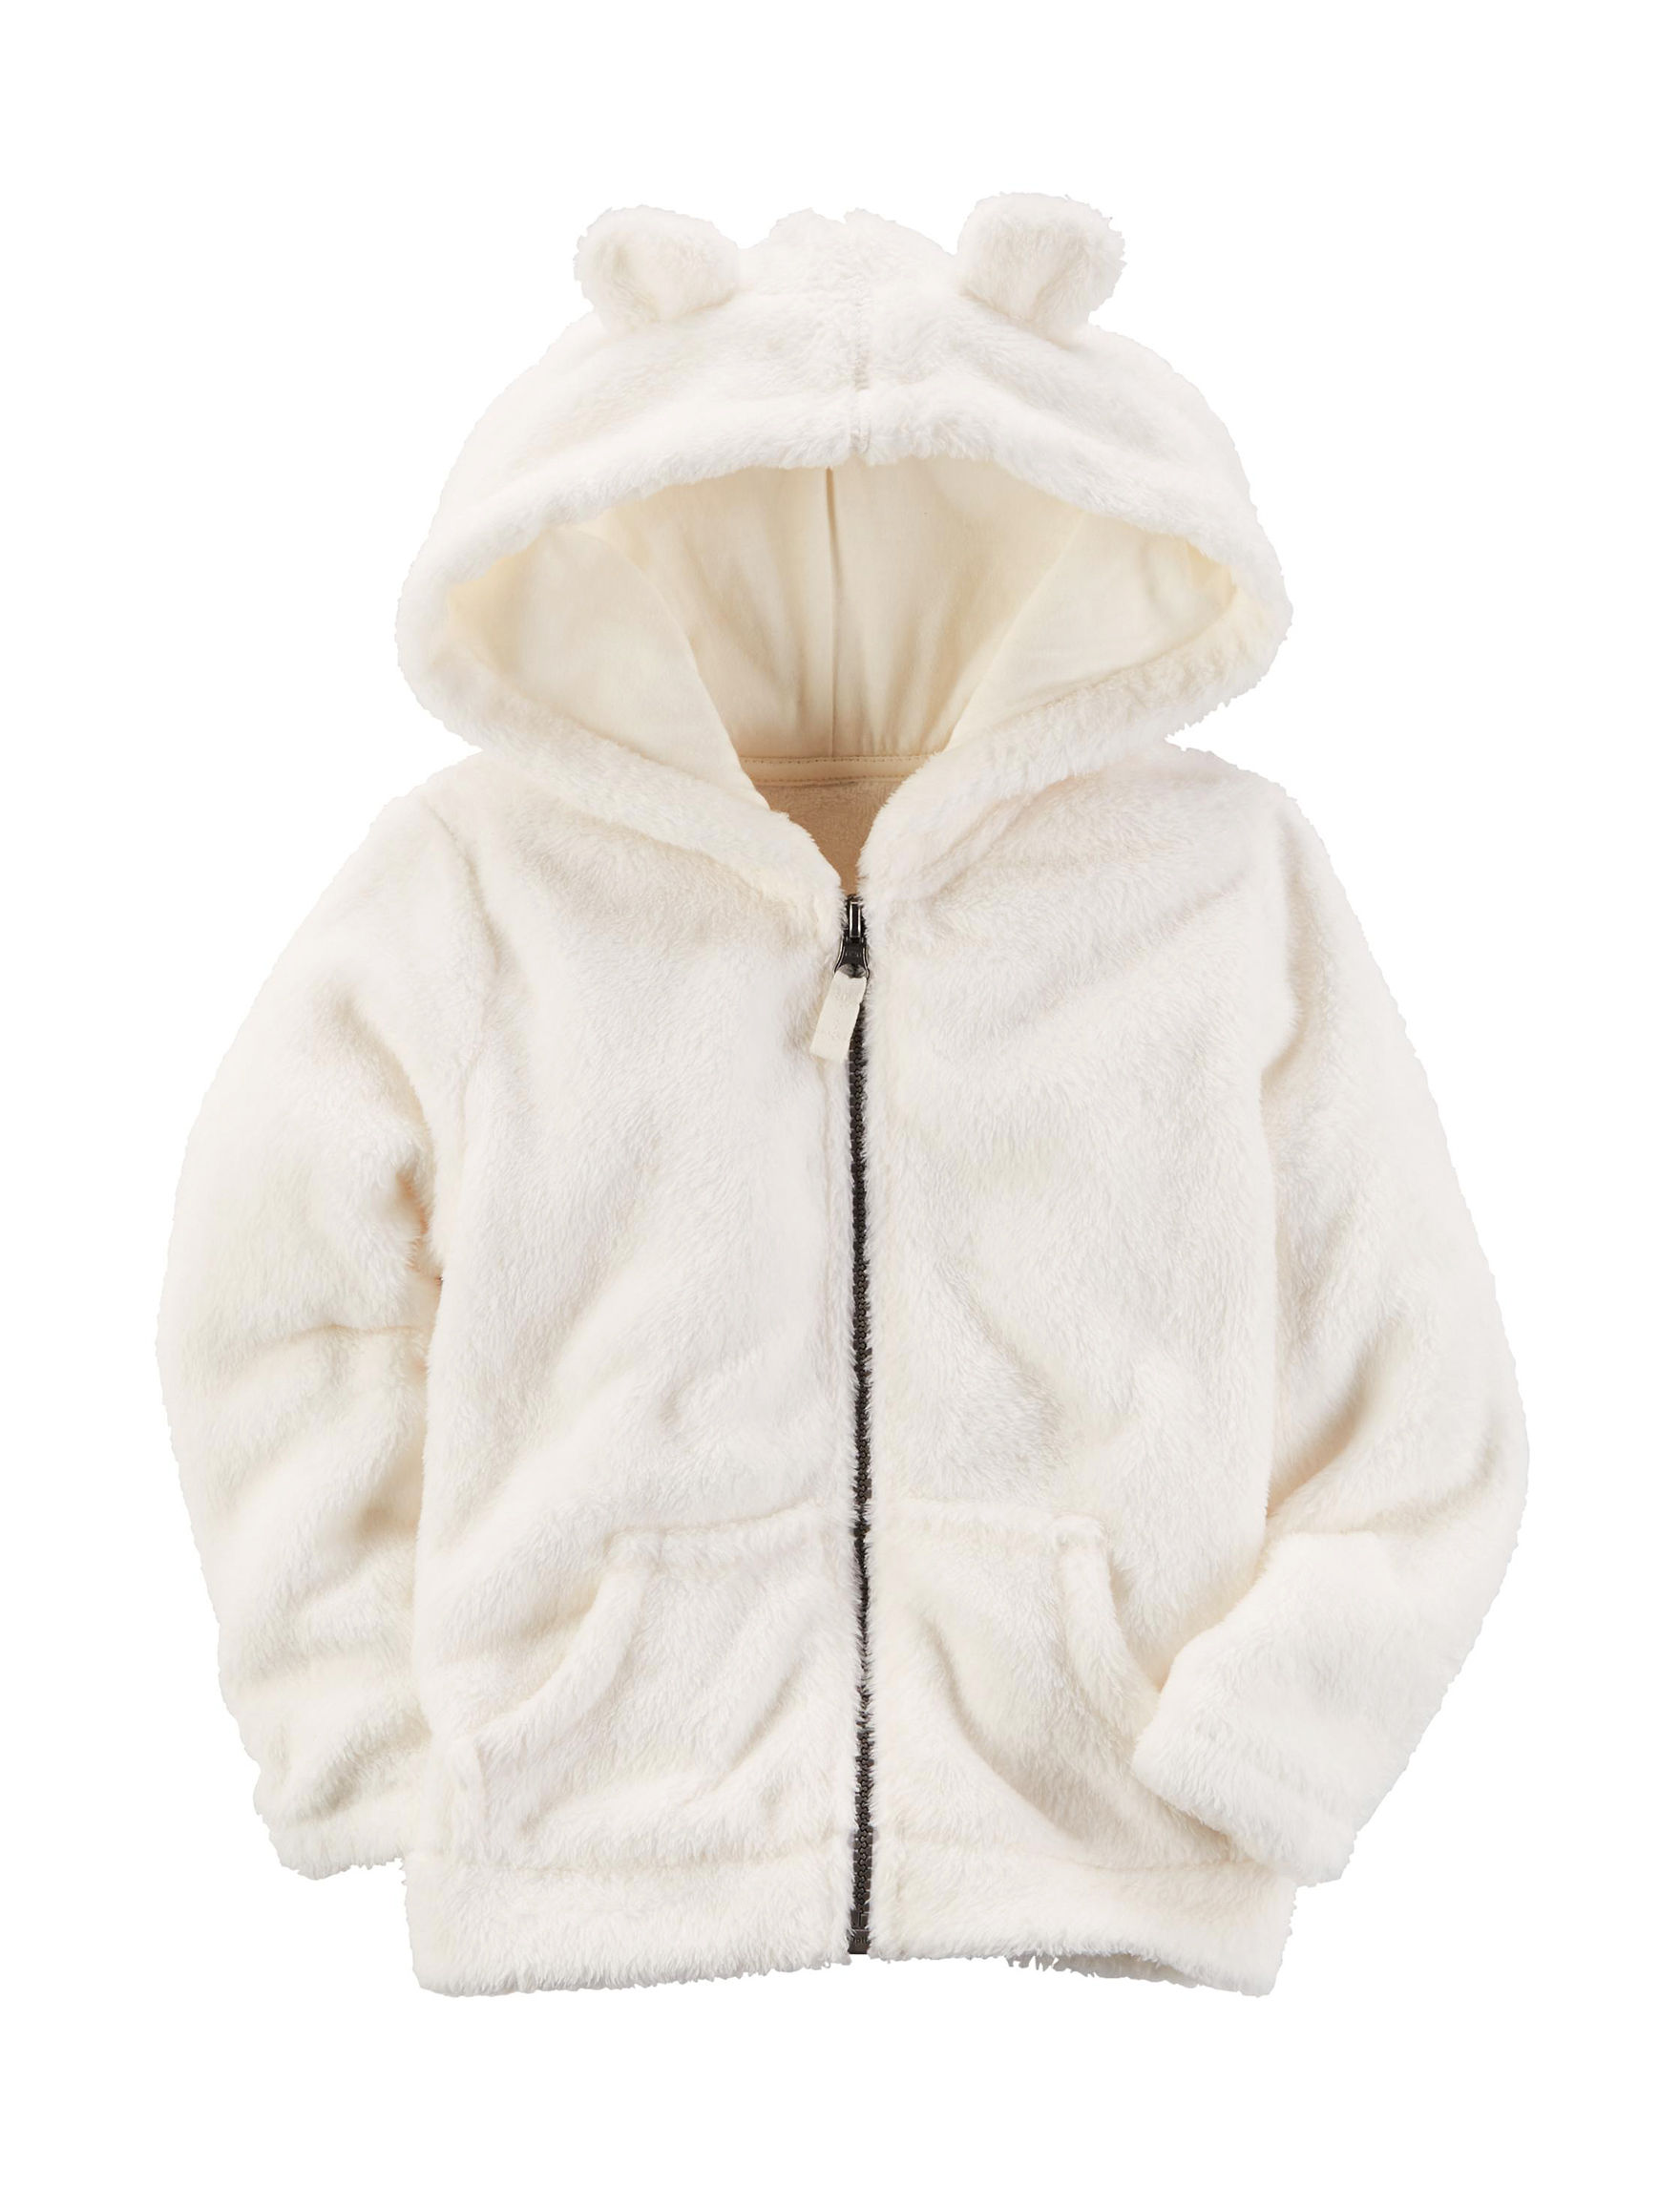 Carter's Ivory Fleece & Soft Shell Jackets